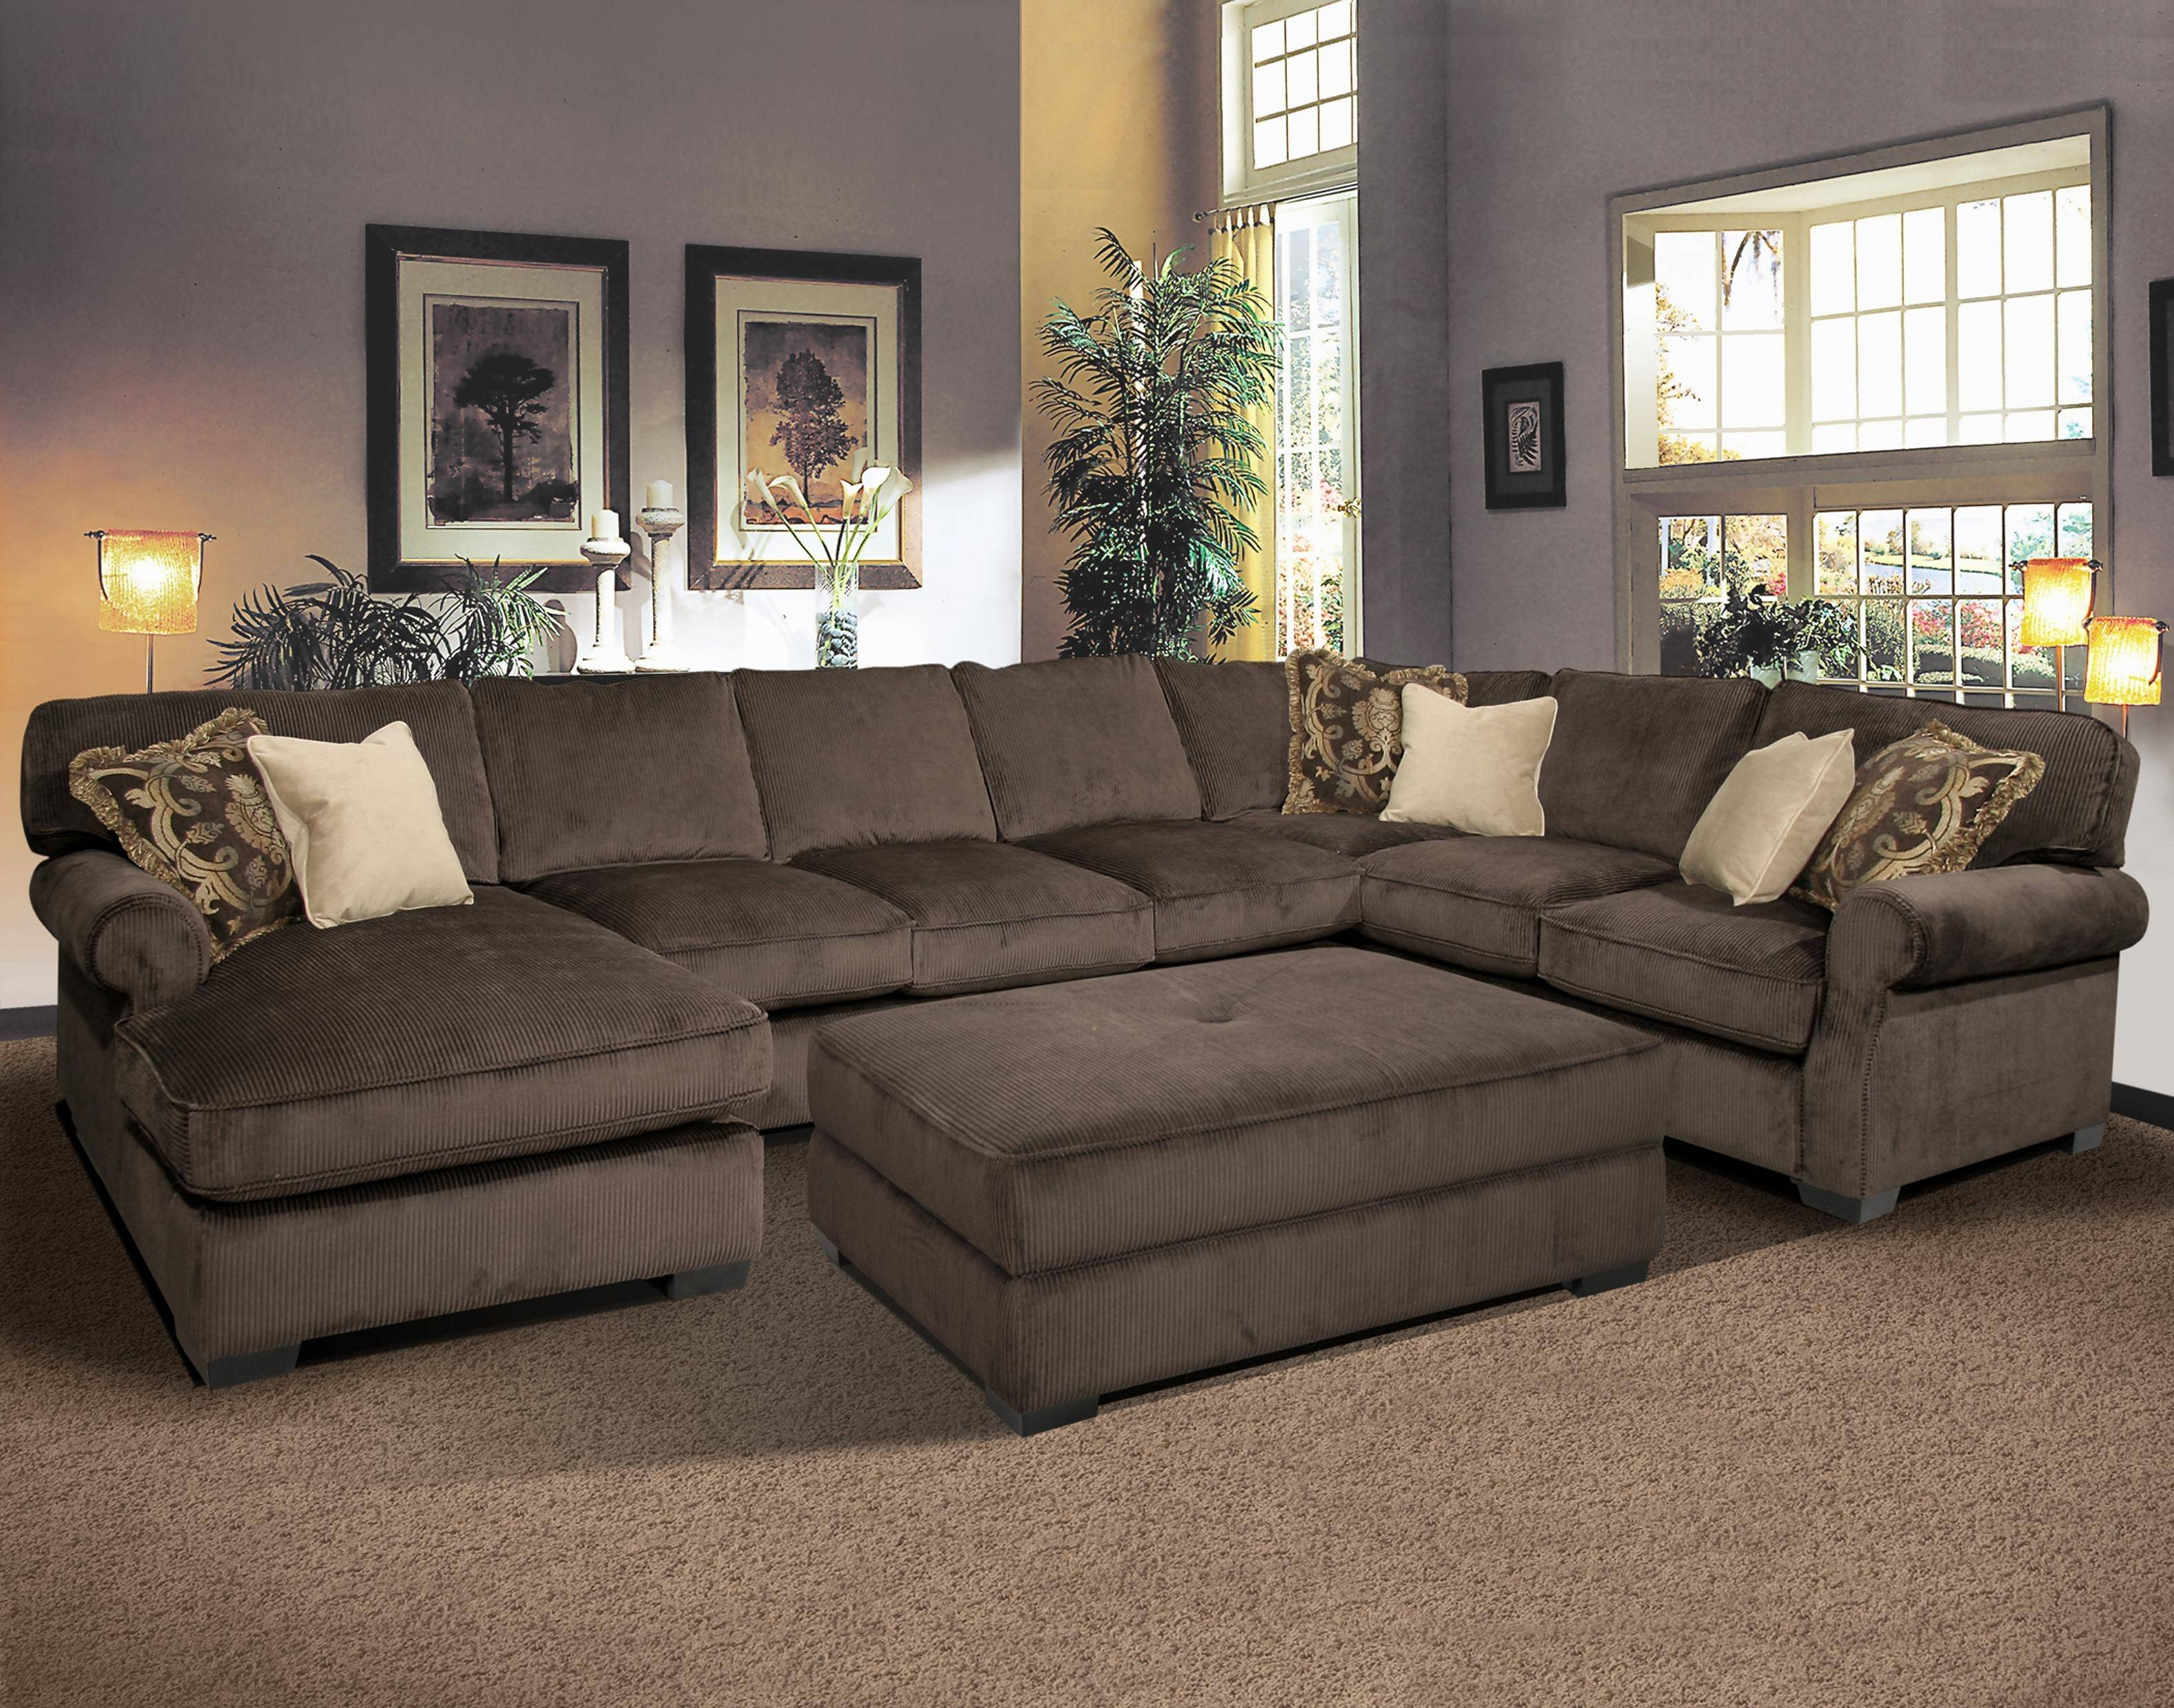 Furniture: Arhaus Baldwin Sofa | Arhaus Sofa | Arhaus Leather Sofa for Arhaus Leather Sofas (Image 5 of 15)